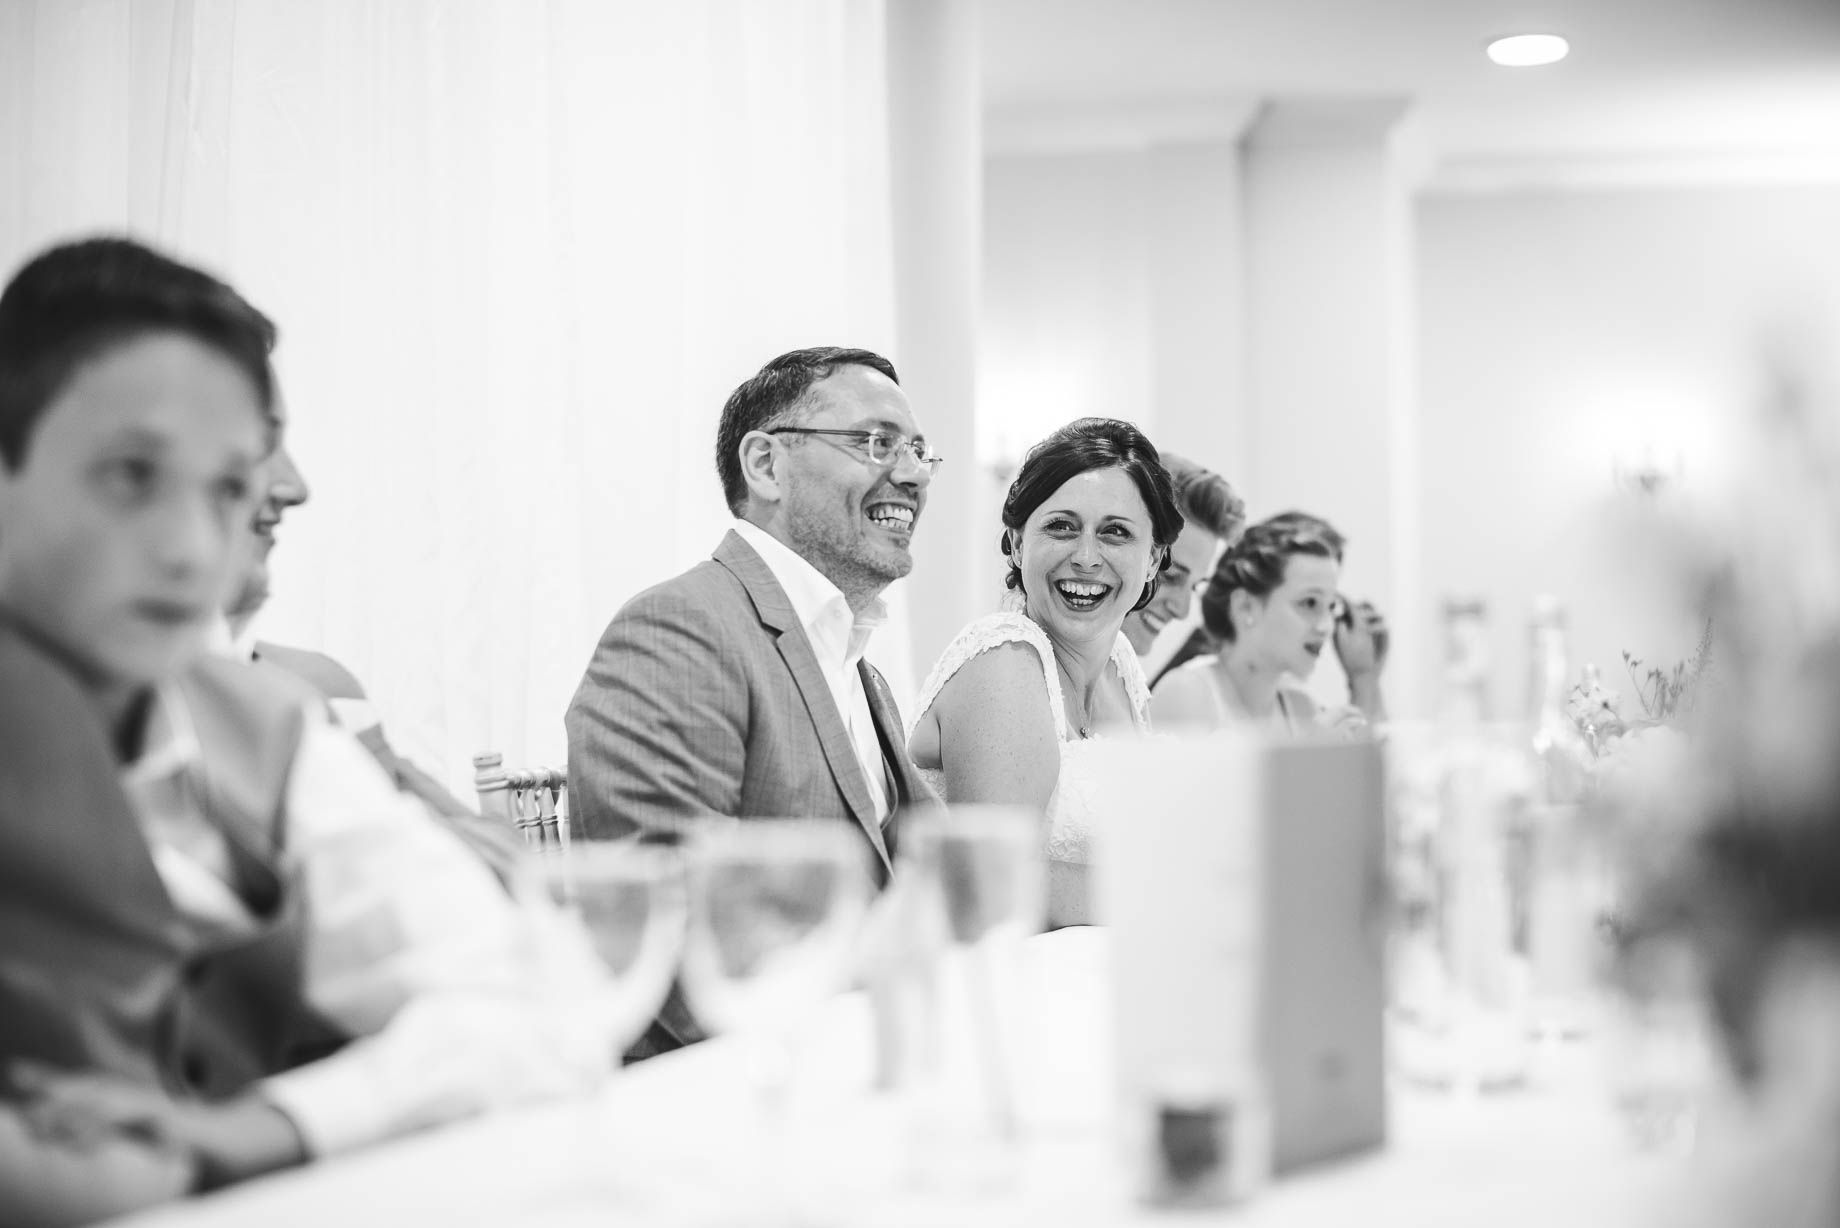 Luton Hoo wedding photography by Guy Collier Photography - Lauren and Gem (140 of 178)